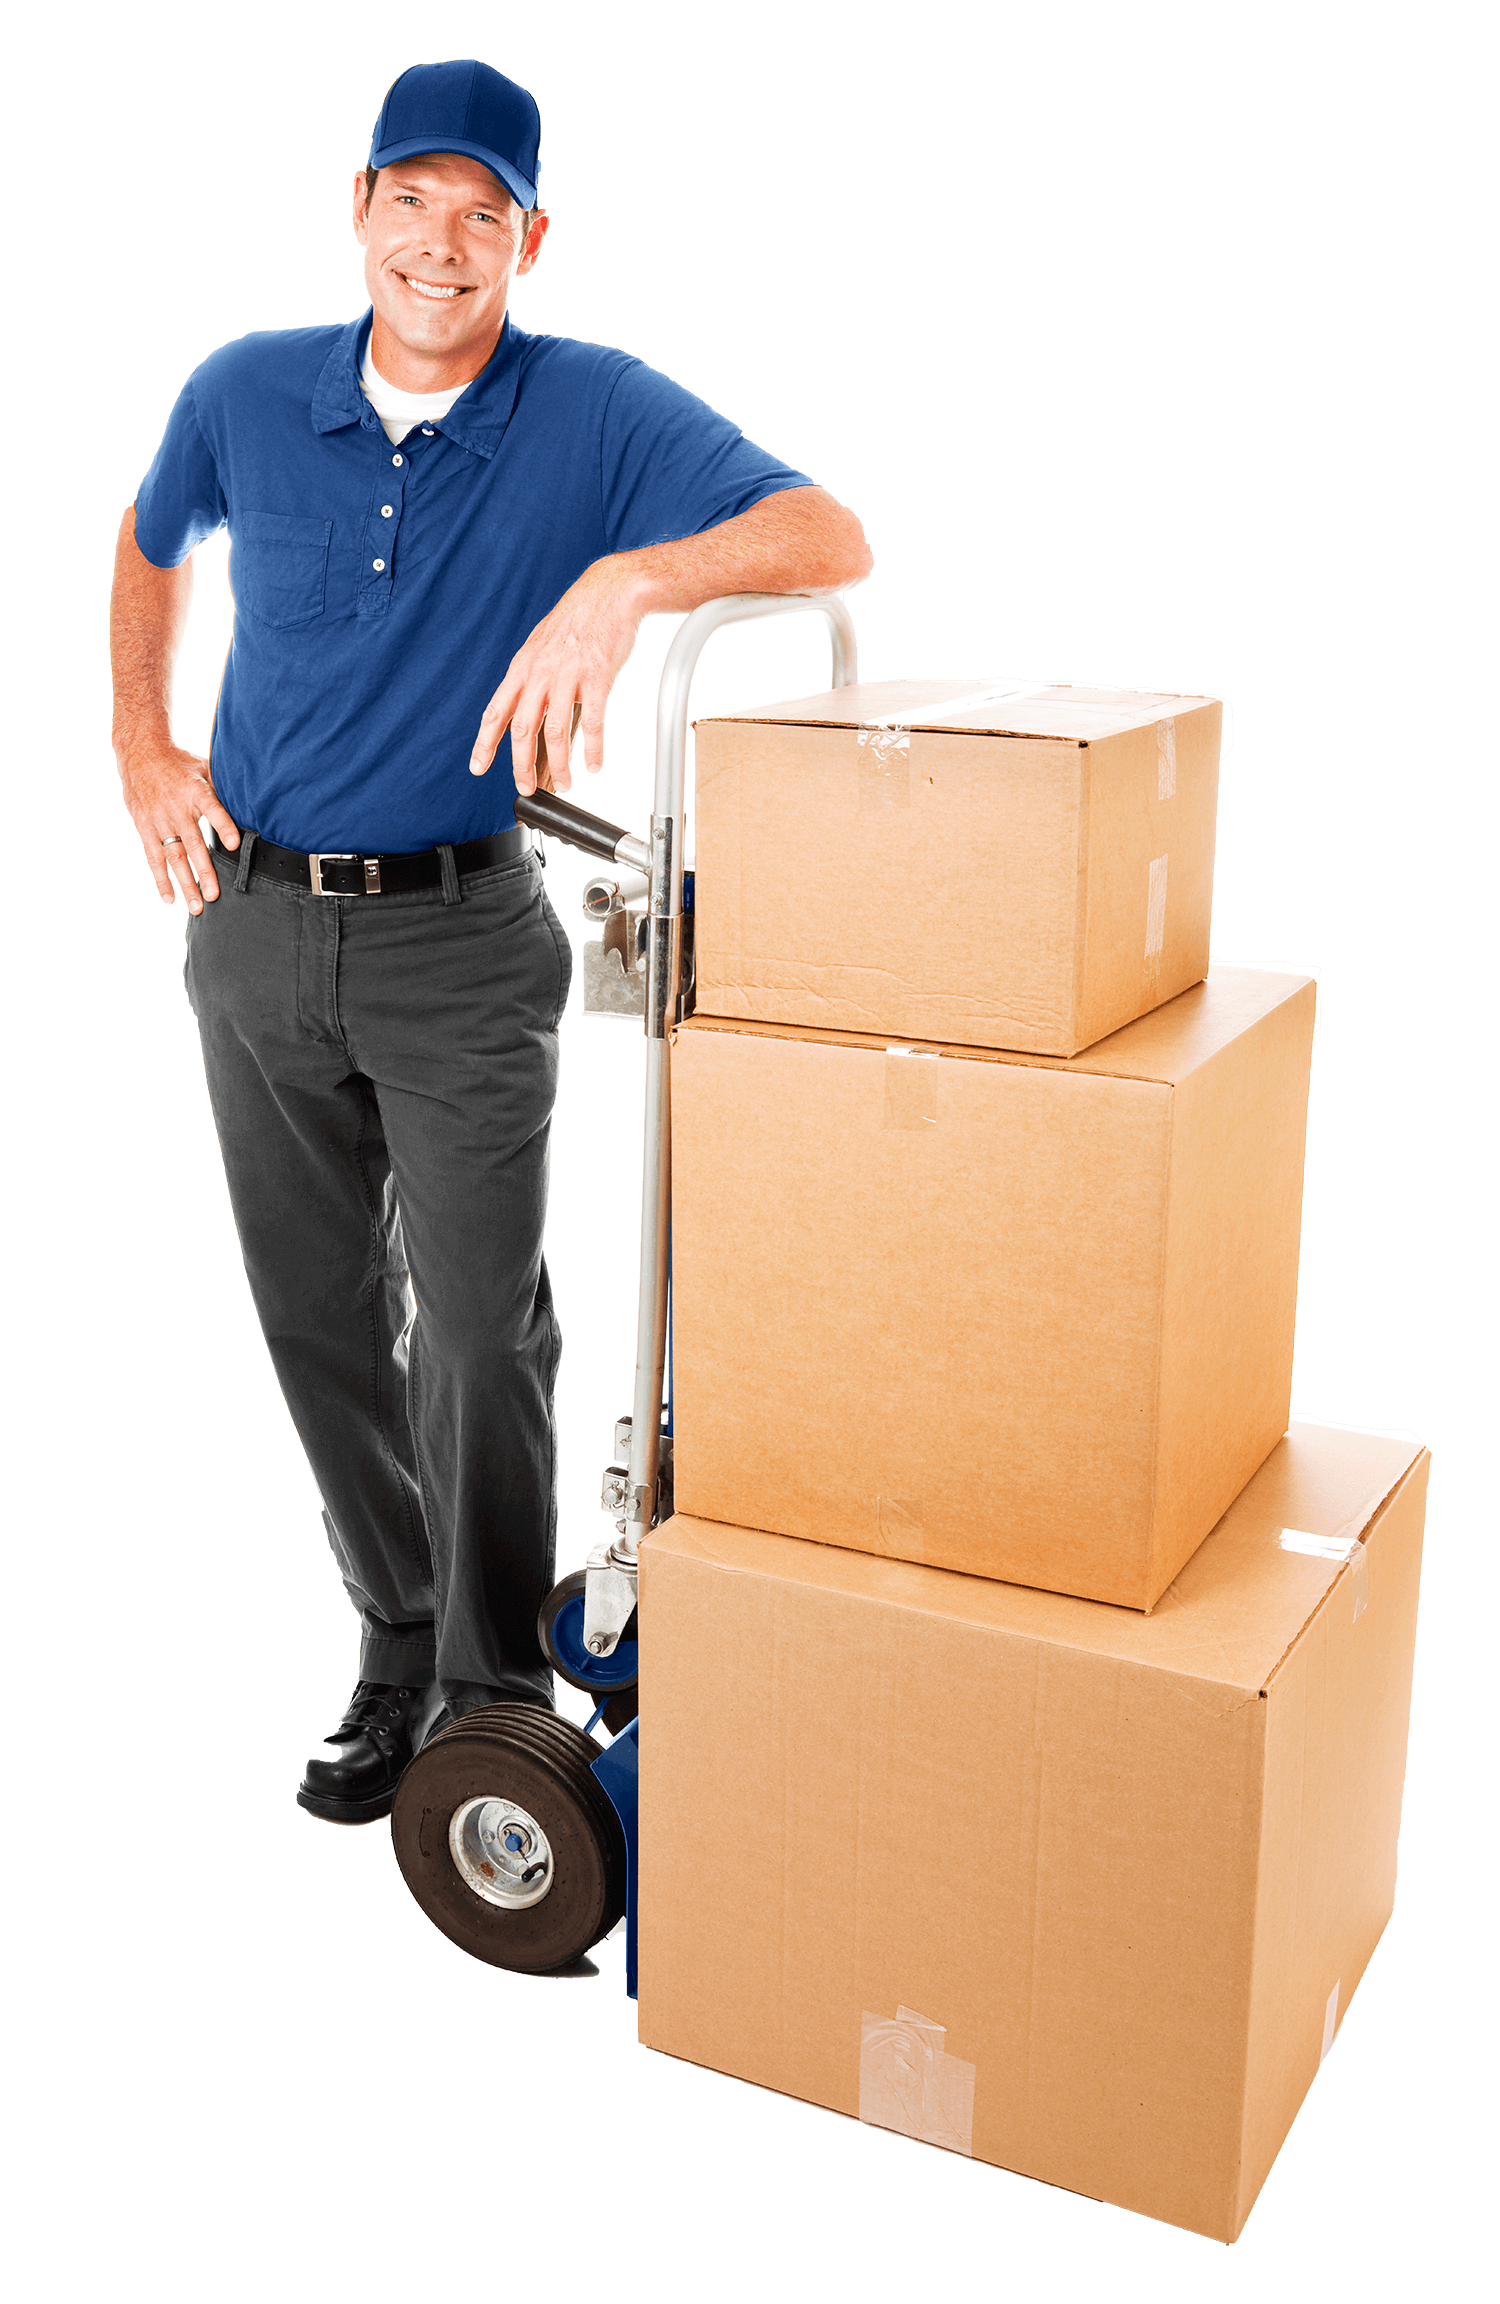 moving service professional with dolly and boxes working for sound moving northwest